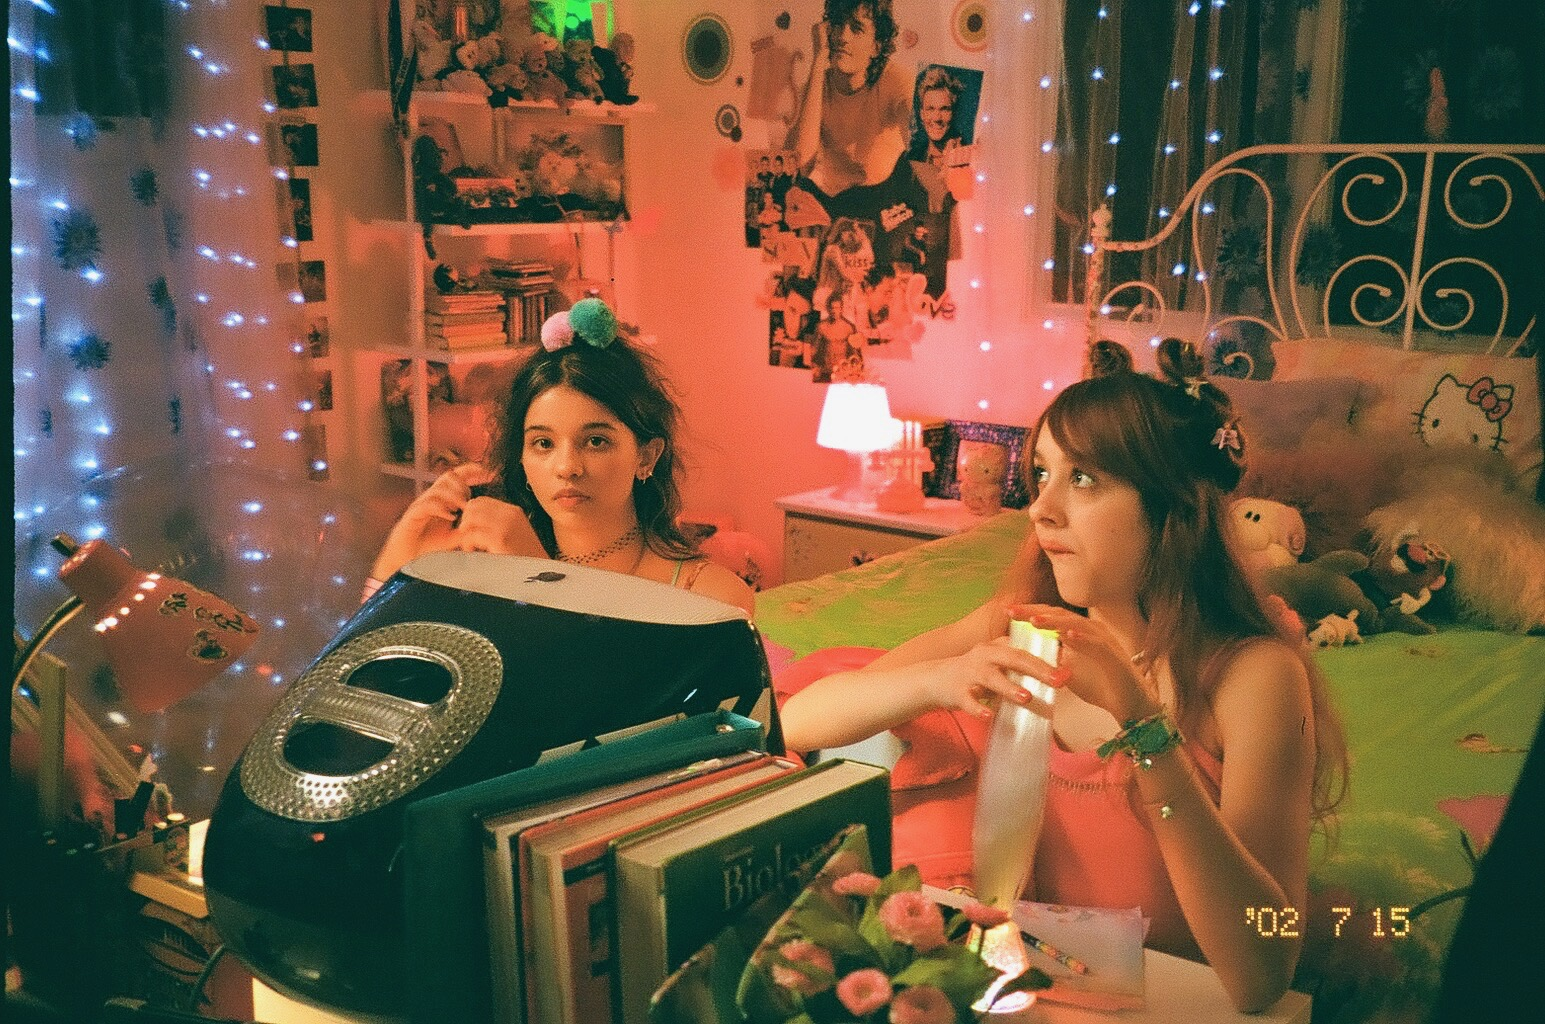 Behind the scenes while filming Pinky Pinky's music video